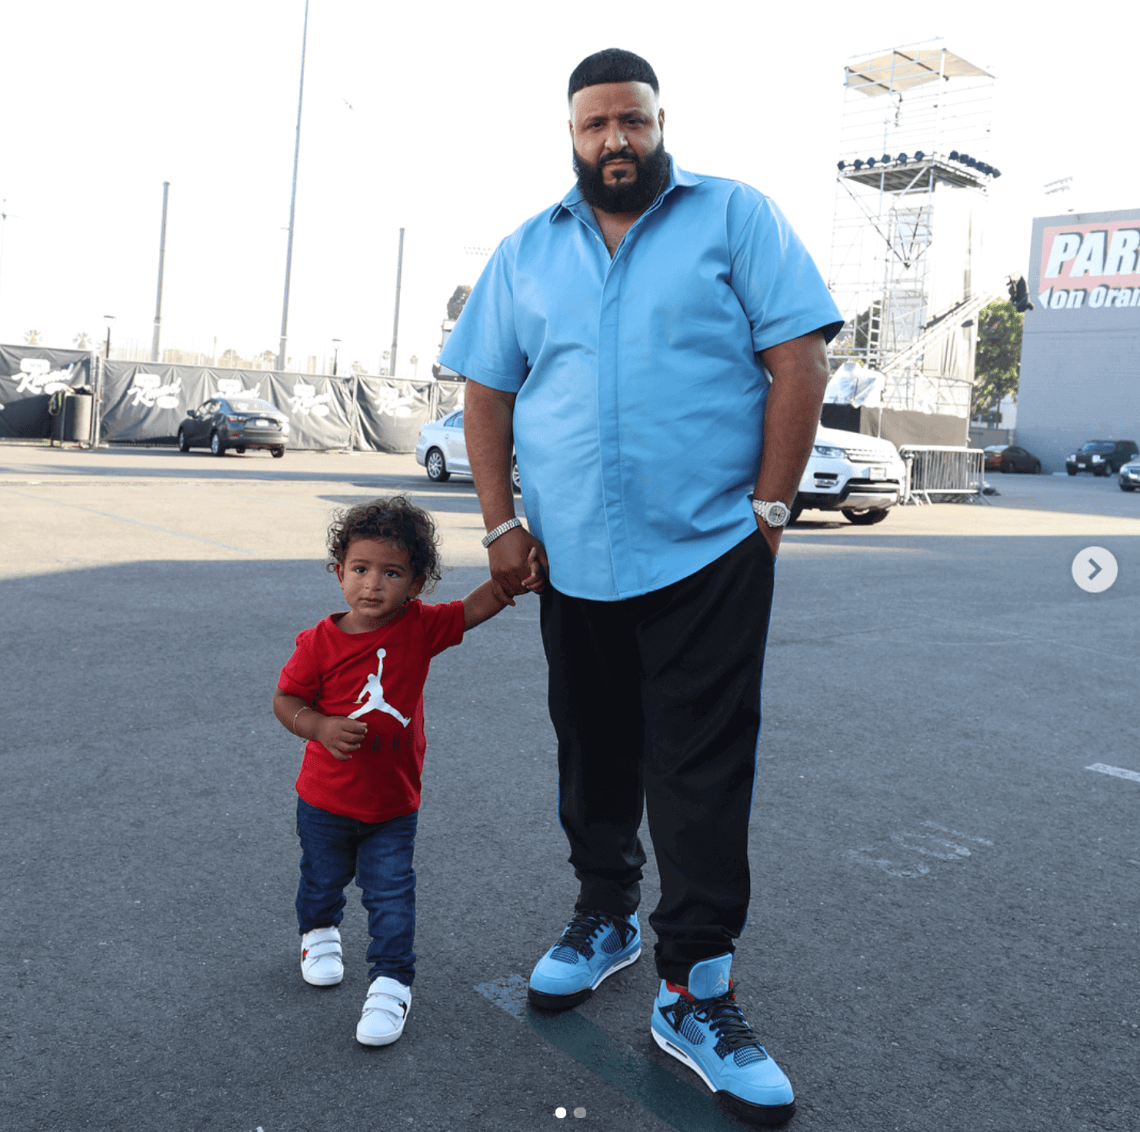 DJ Khaled in the Air Jordan 4 Retro 'Cactus Jack""